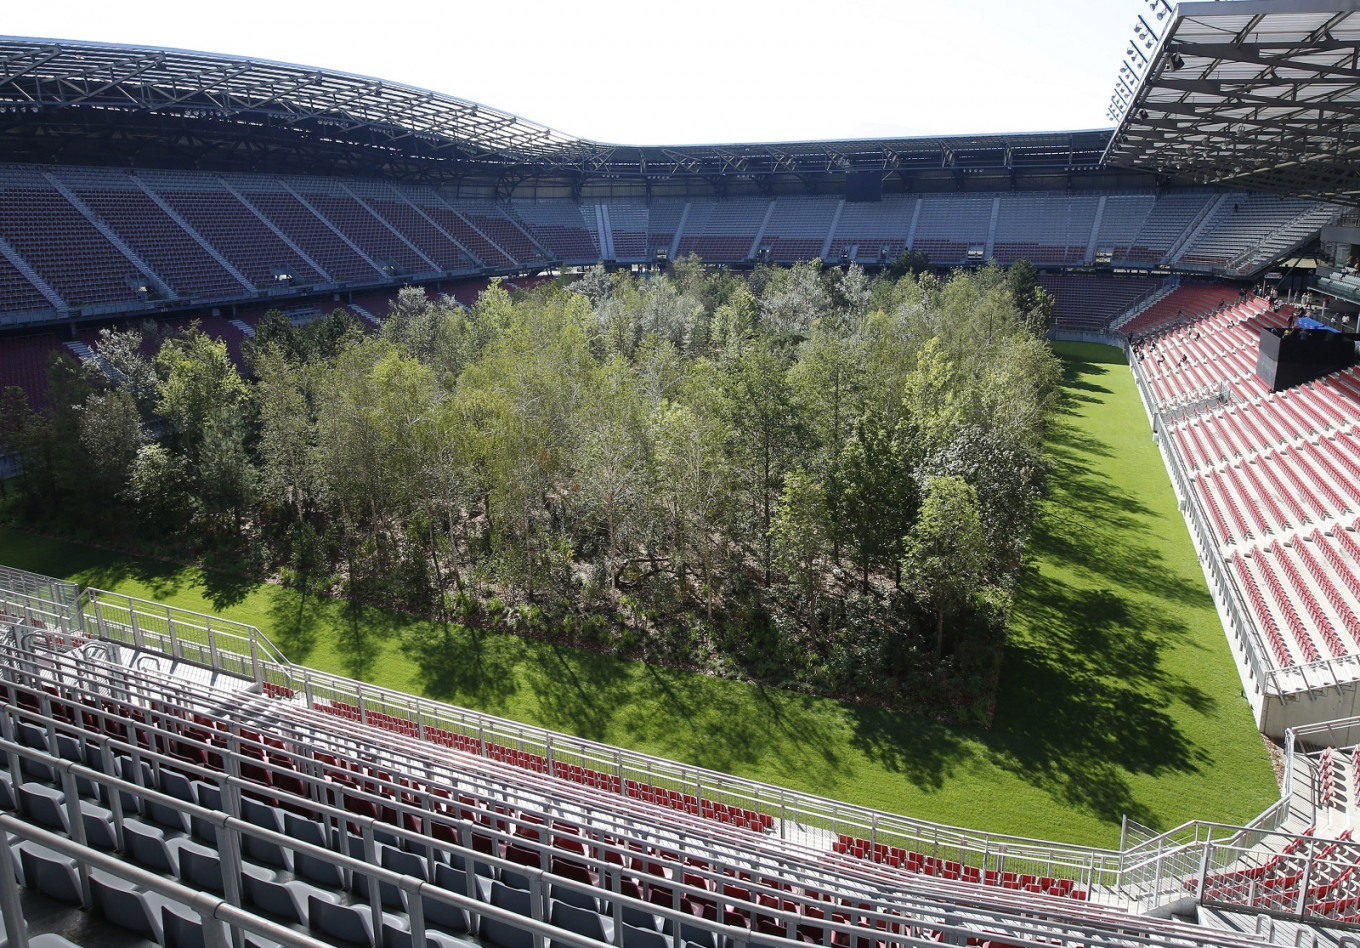 Austrian football stadium turned into a forest